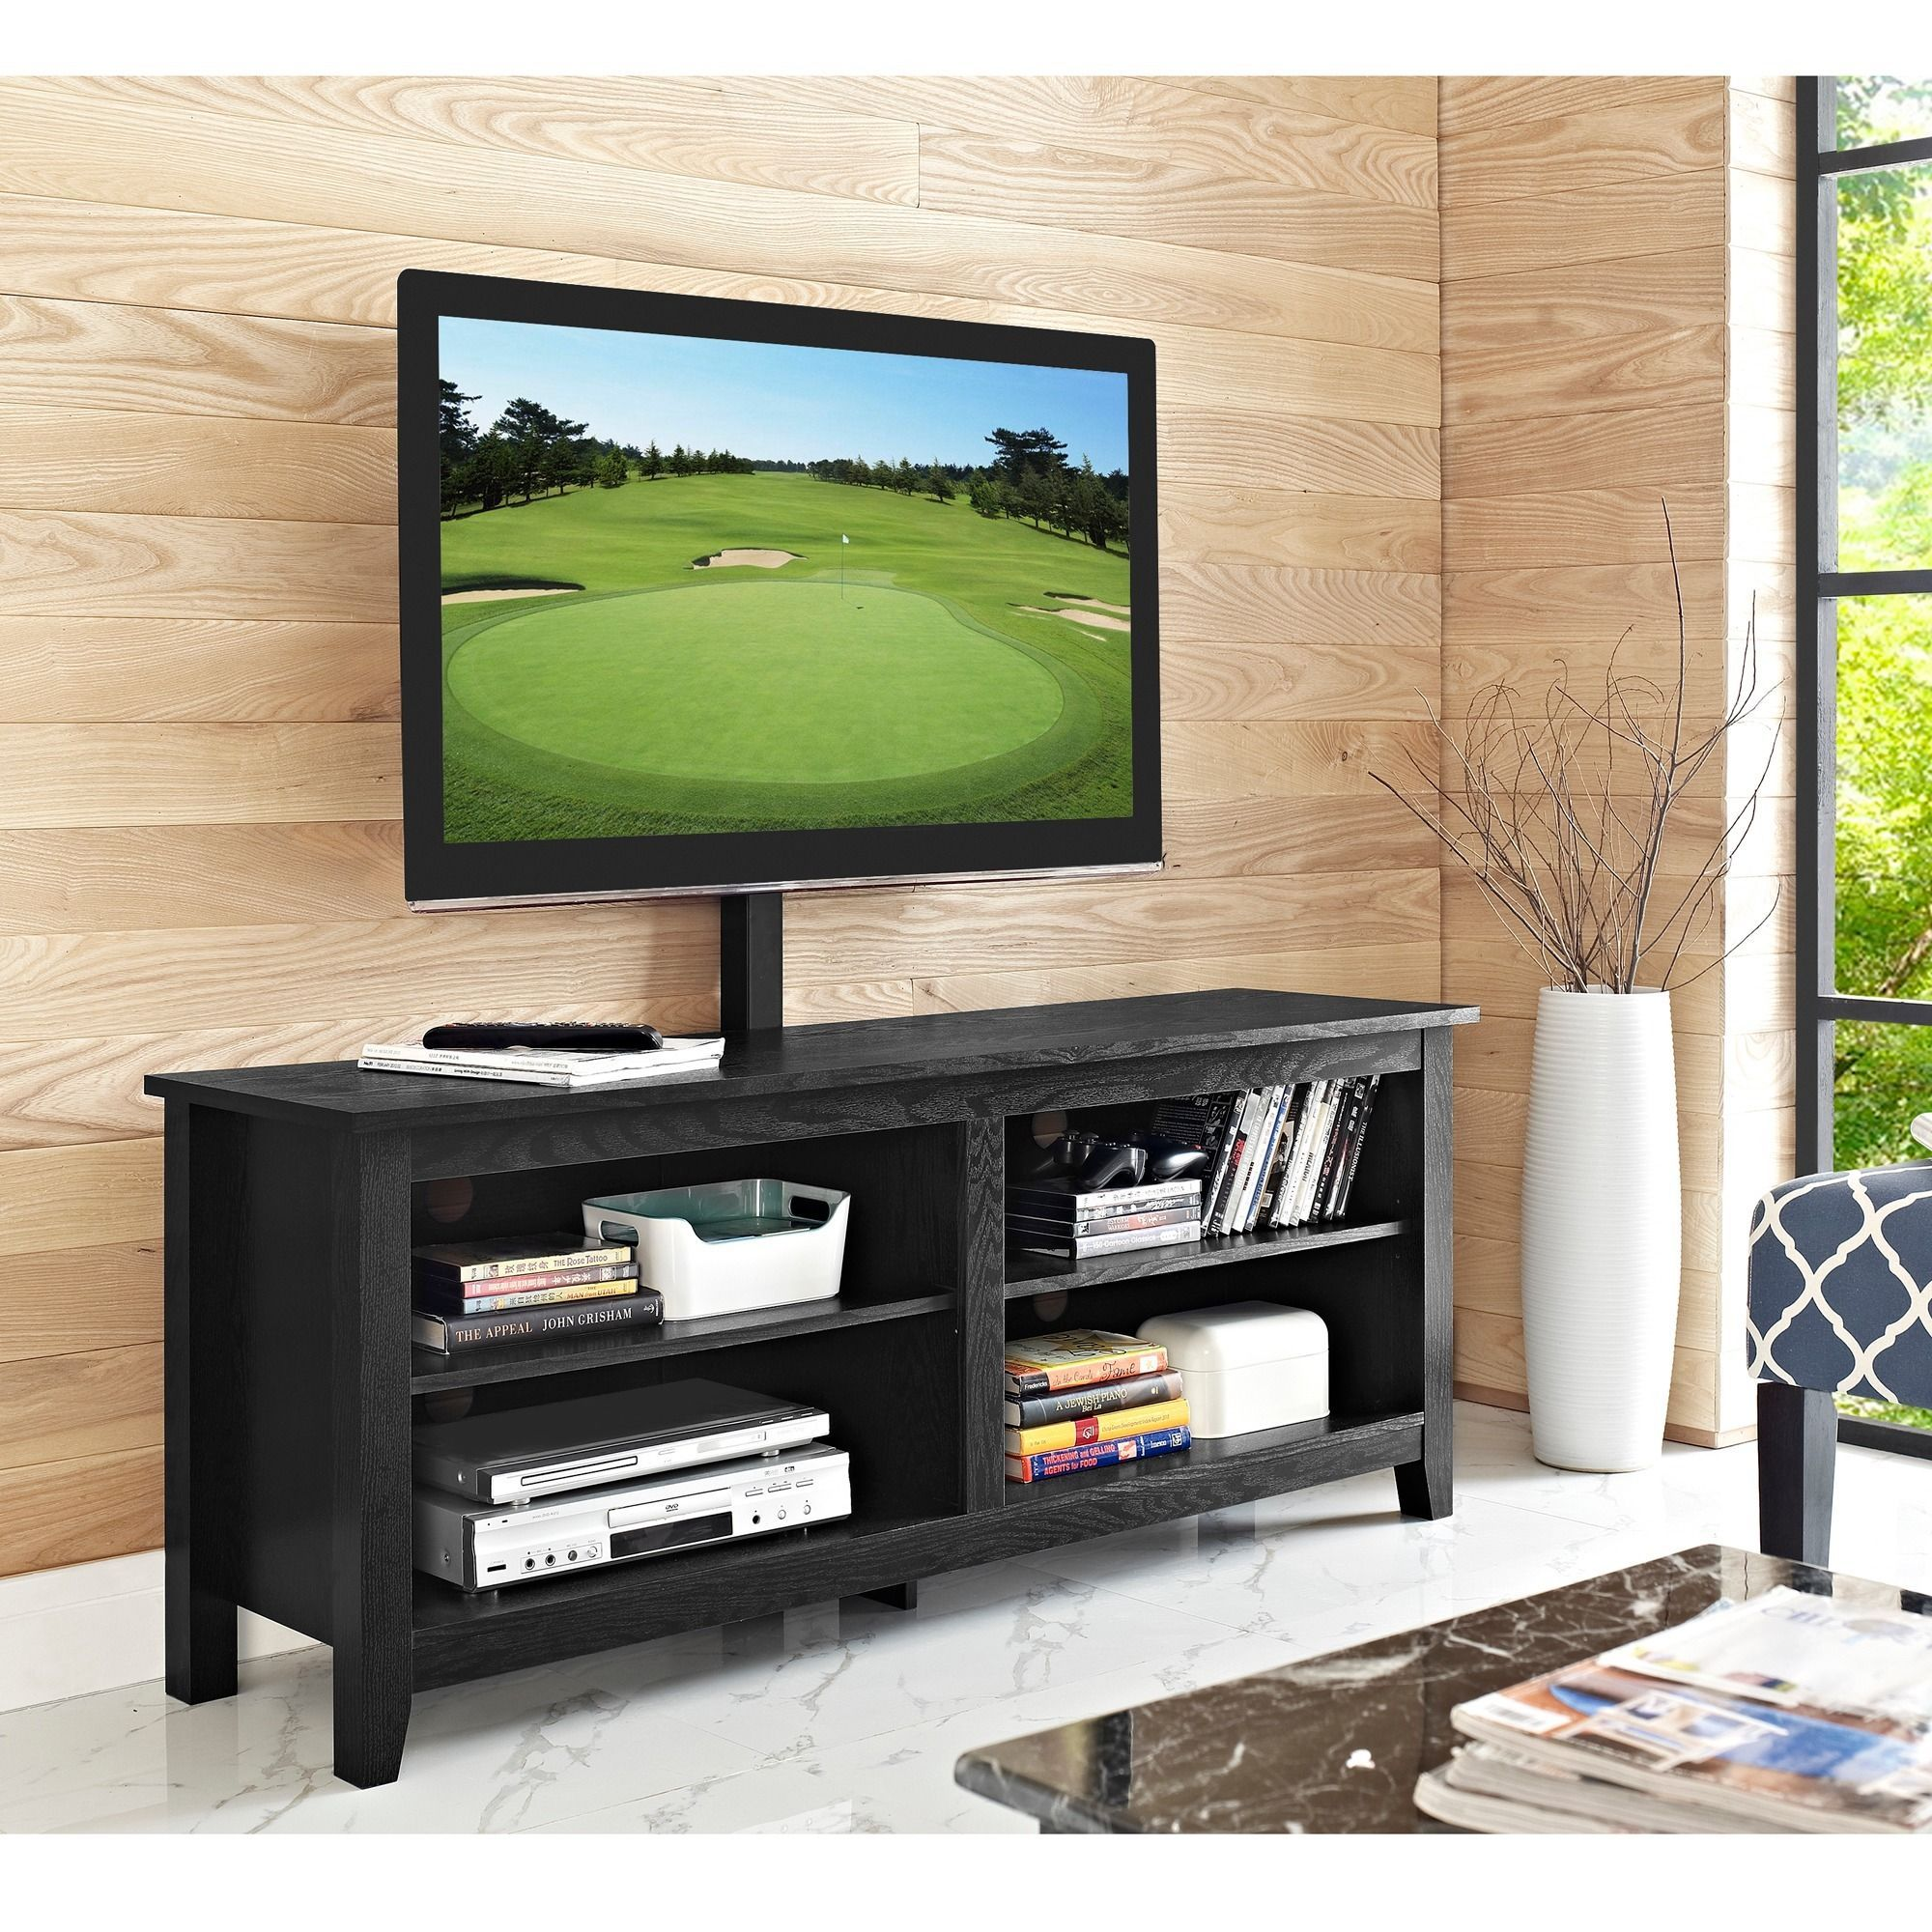 58 Inch Black Wood TV Stand With Removable Mount (58 Black Wood TV Stand